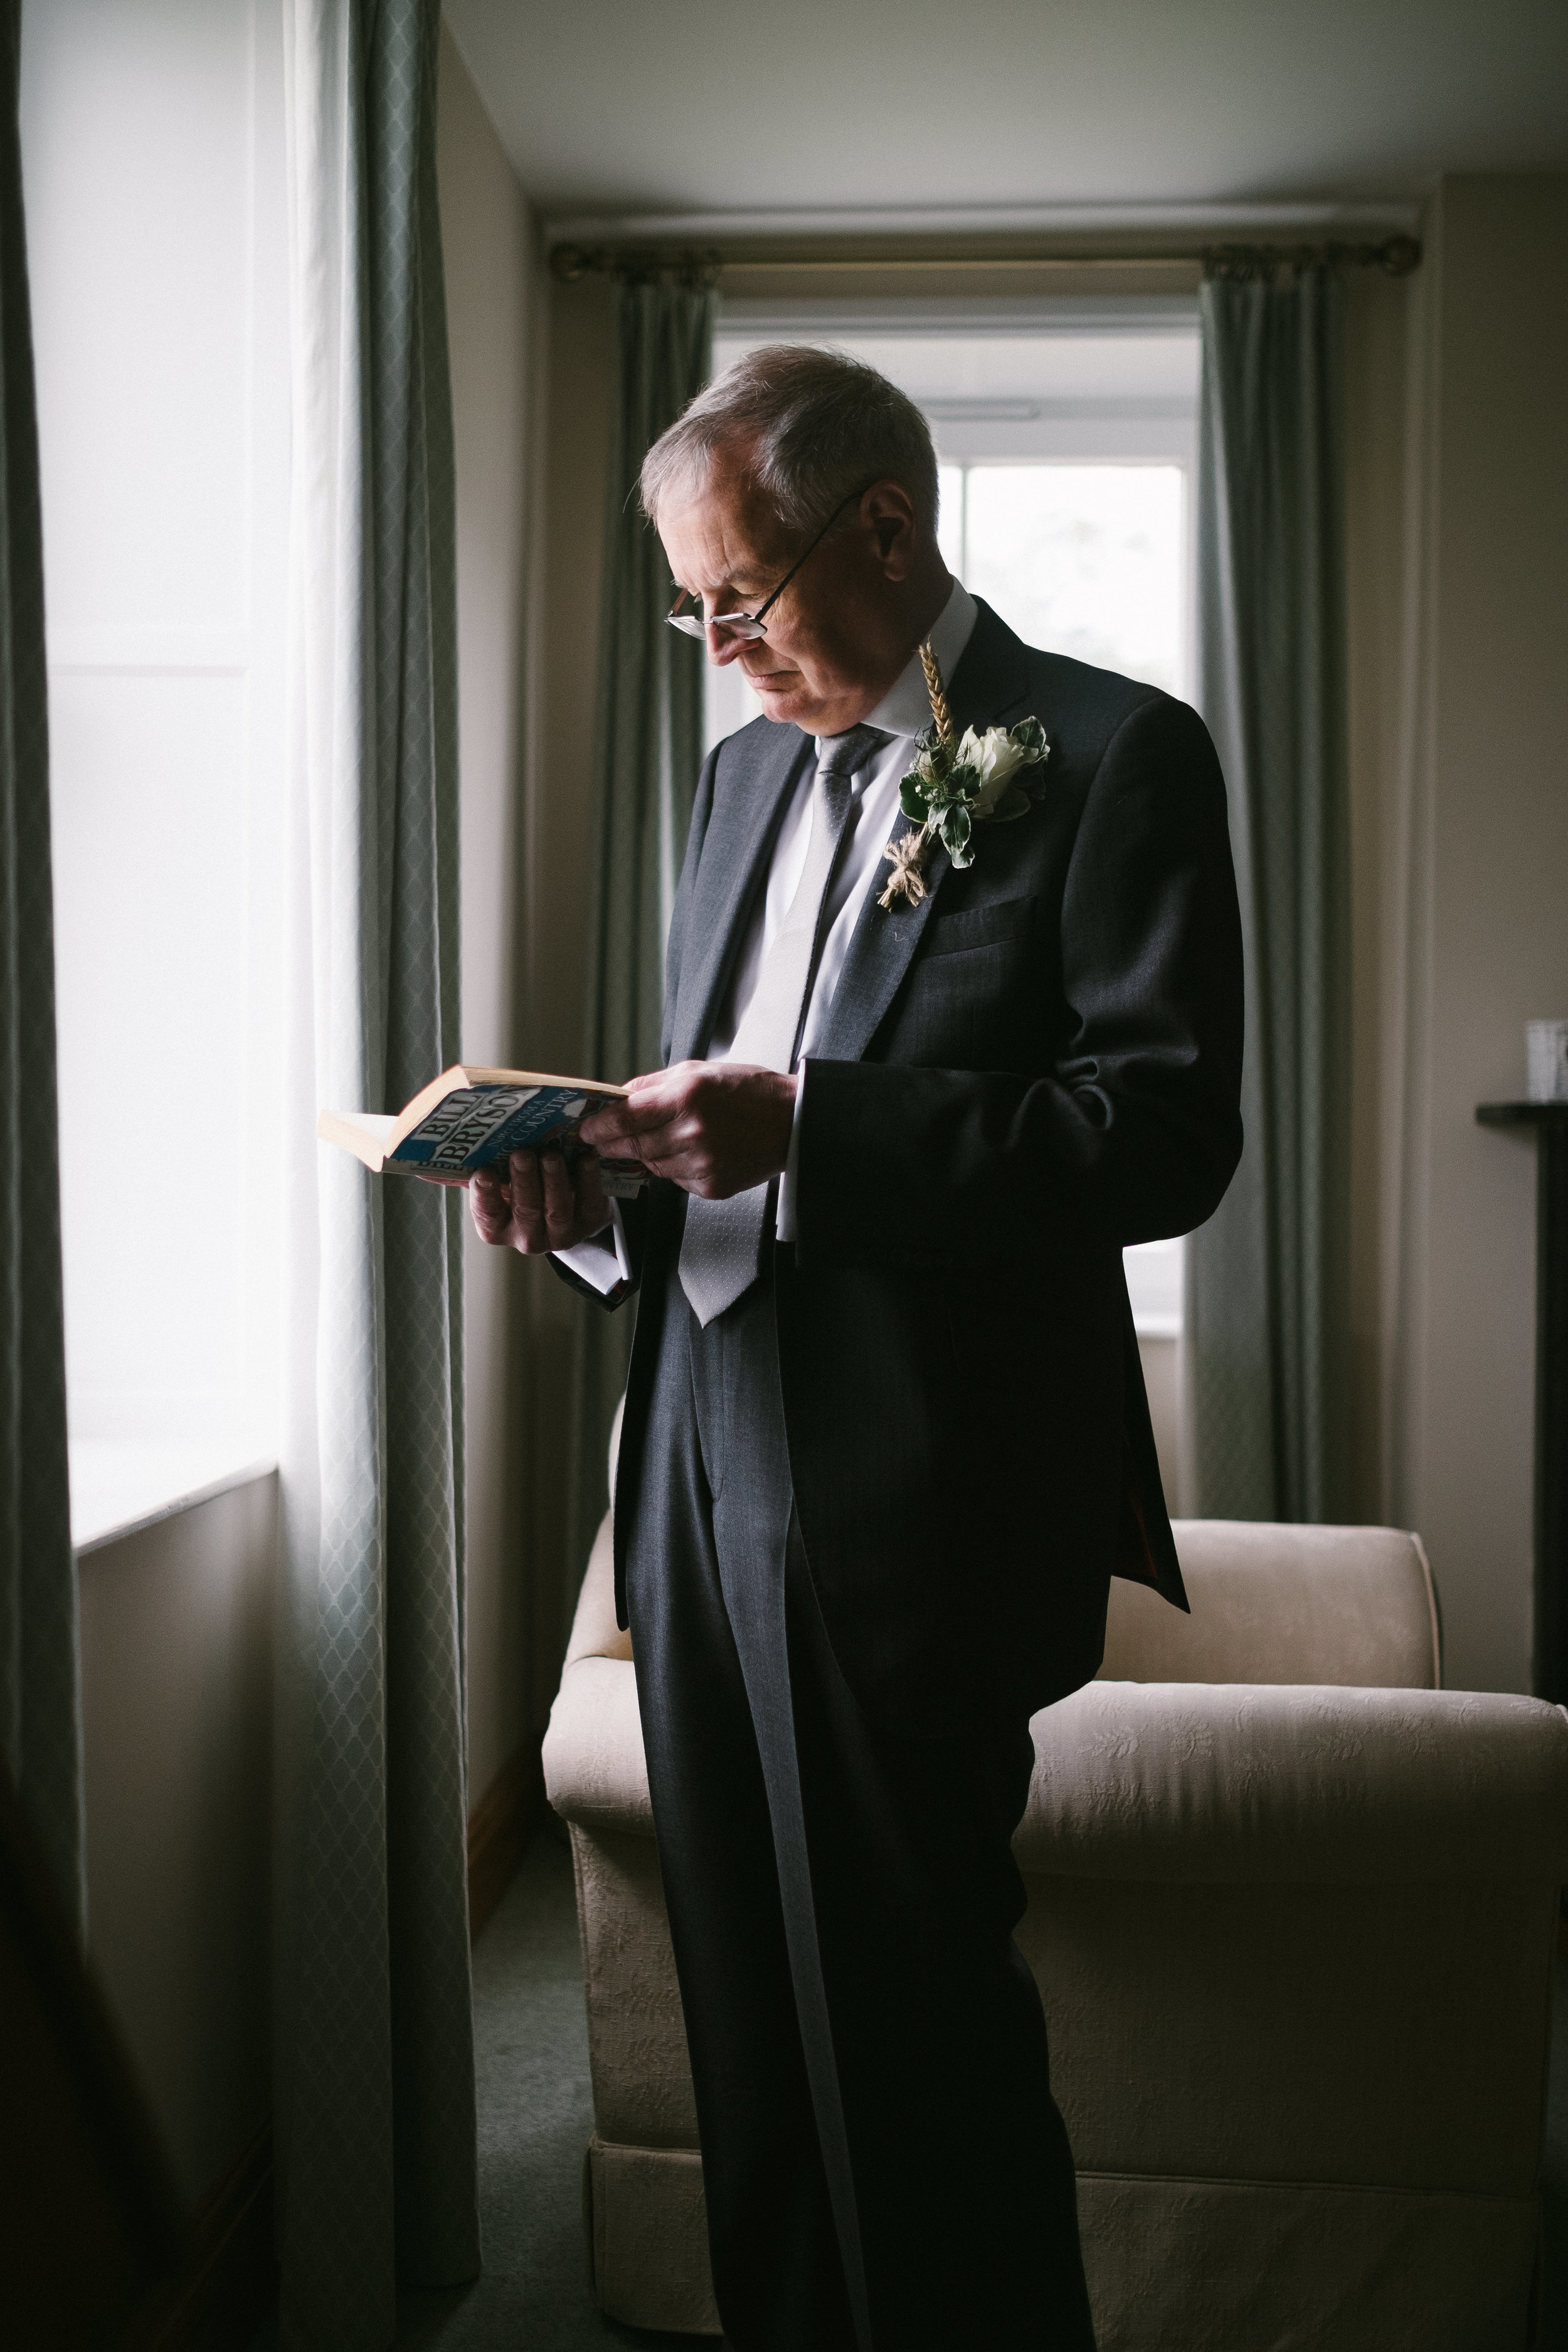 Father of the groom reads a book while standing at a window before his son's wedding